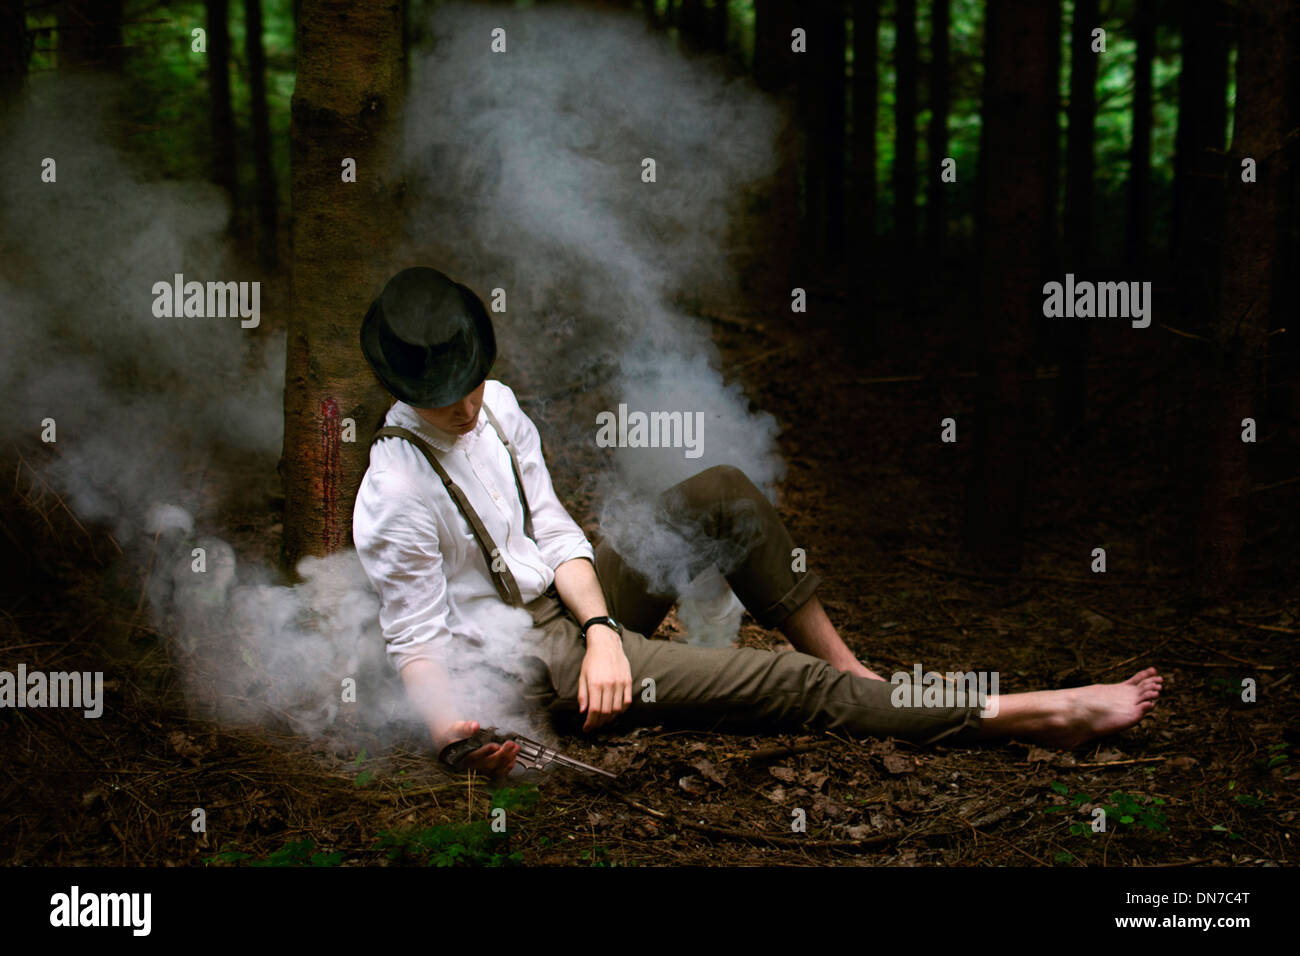 Man surrounded by smoke with gun in hand leaning on tree - Stock Image